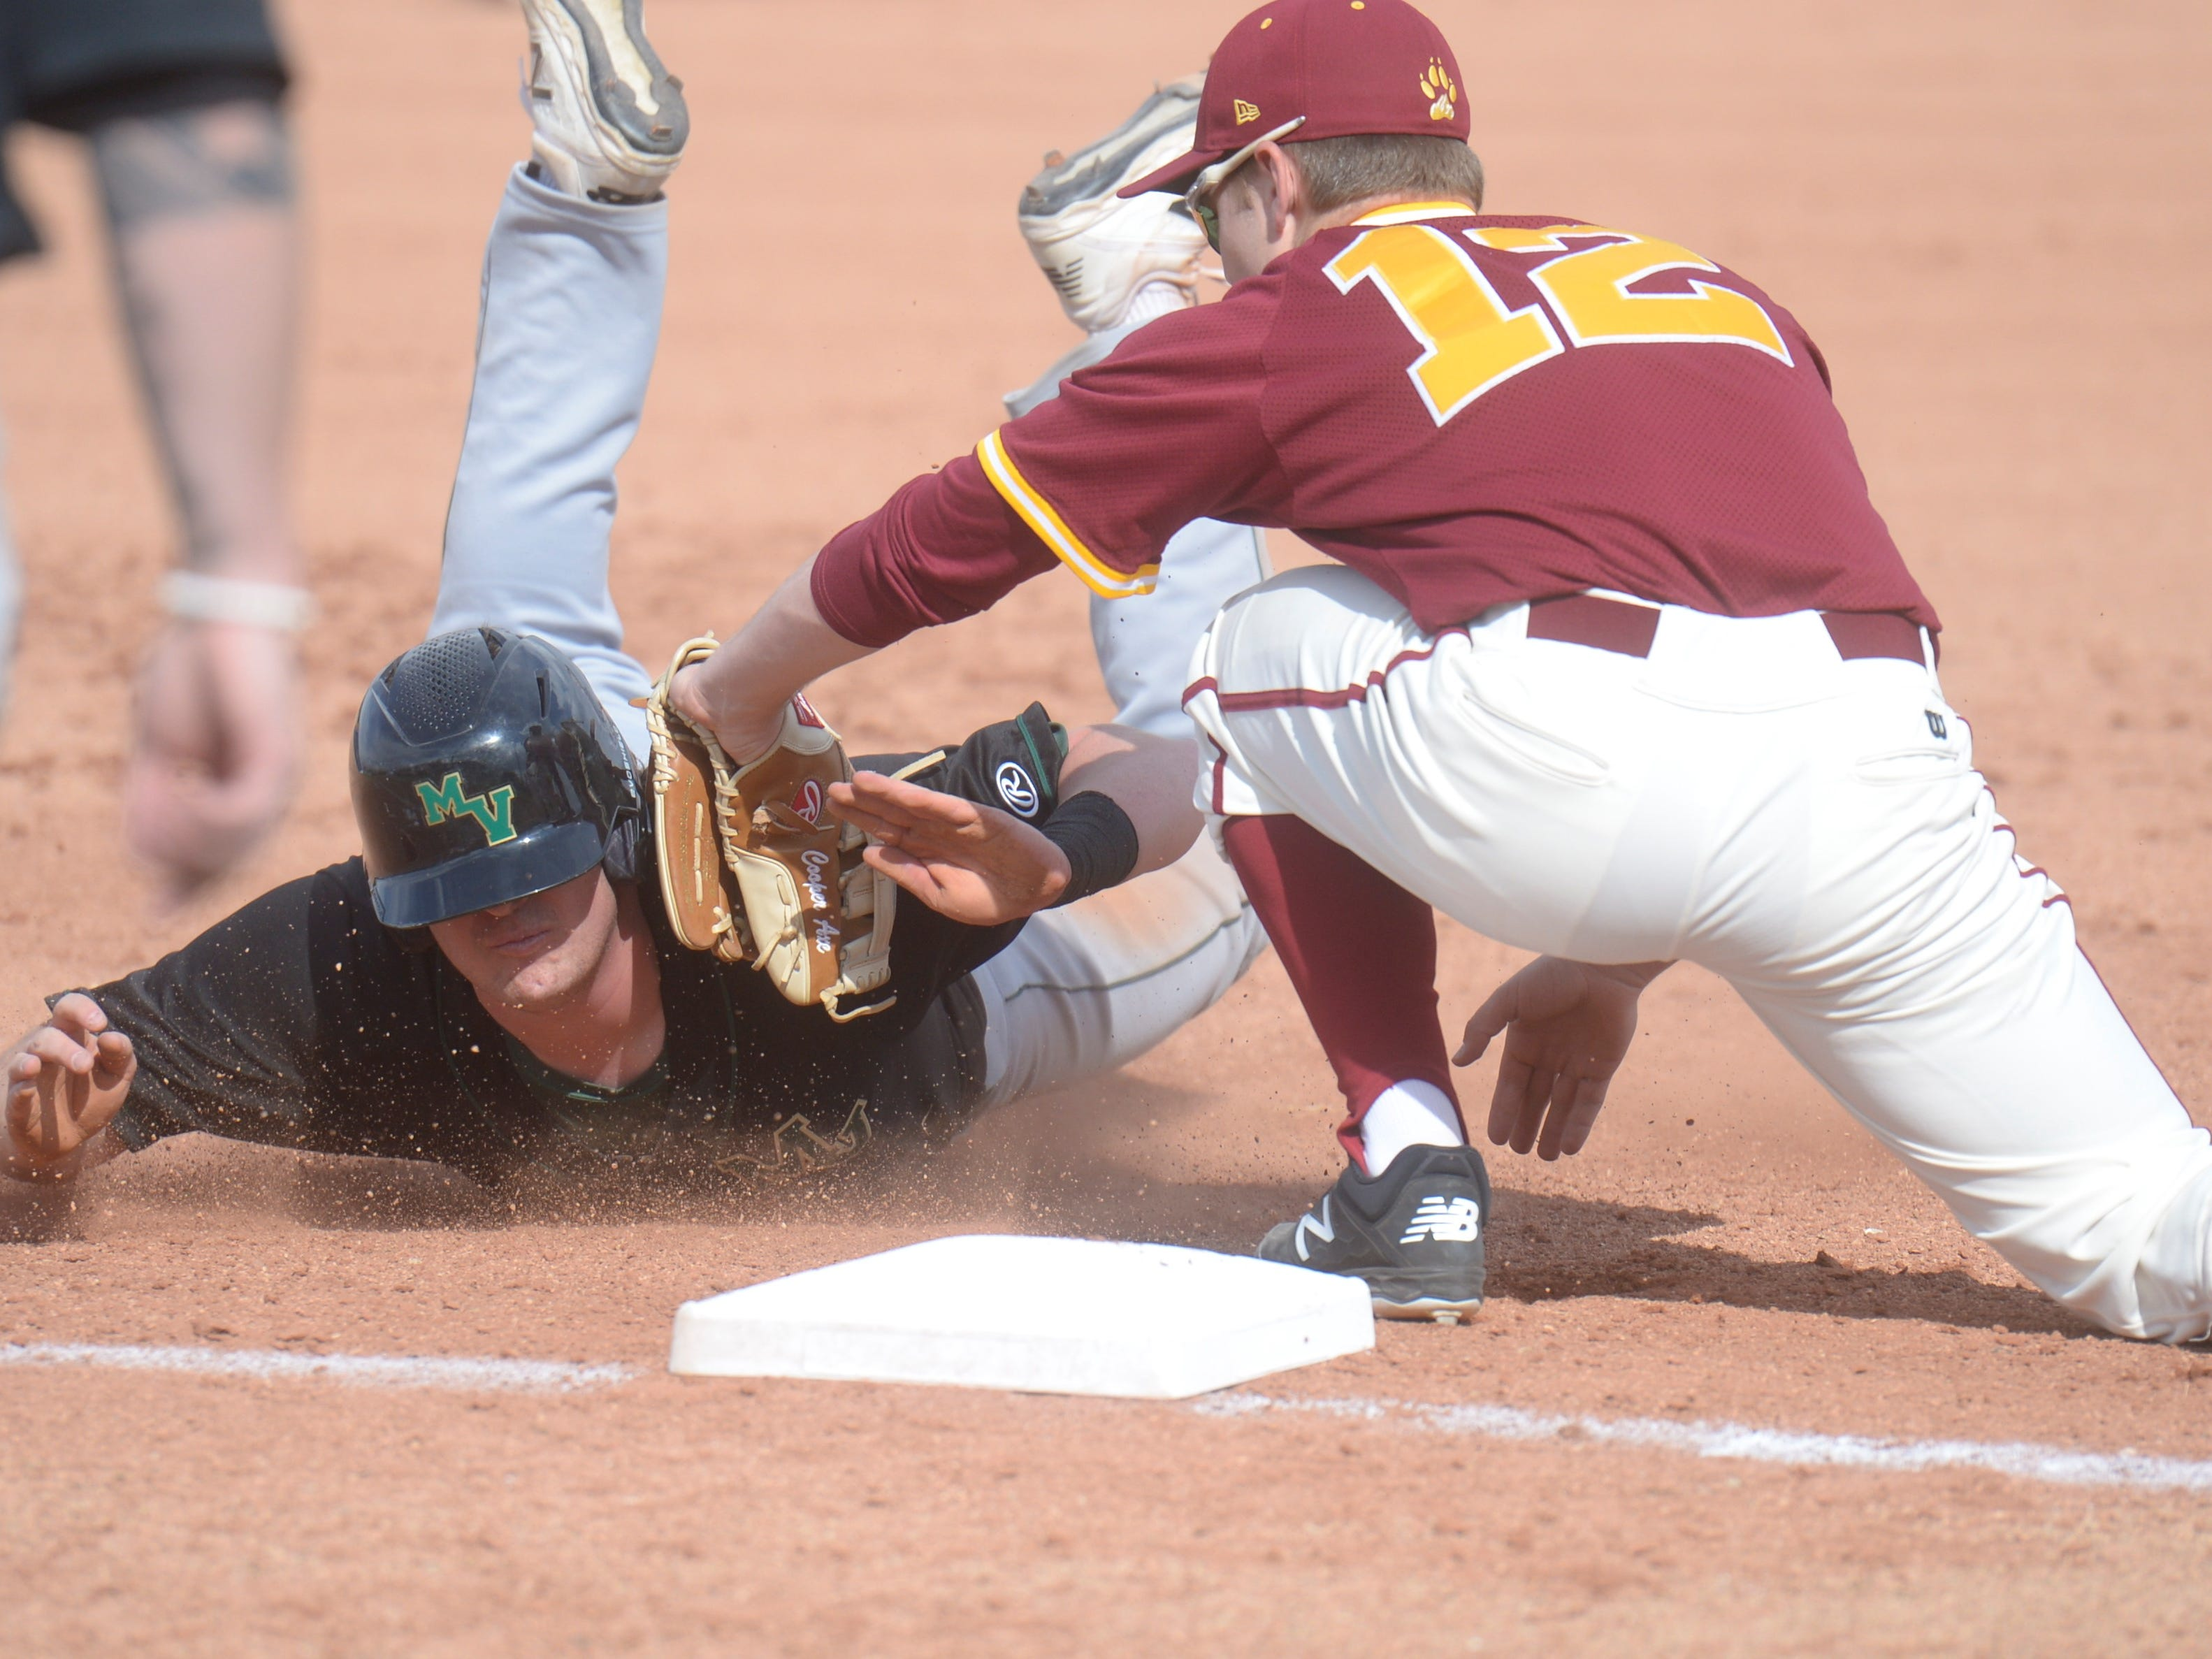 Rocky Mountain baseball third baseman Cooper Axe tags out a runner trying to advance during a game Wednesday, April 3, 2019 against Mountain Vista. Mountain Vista won 10-2.